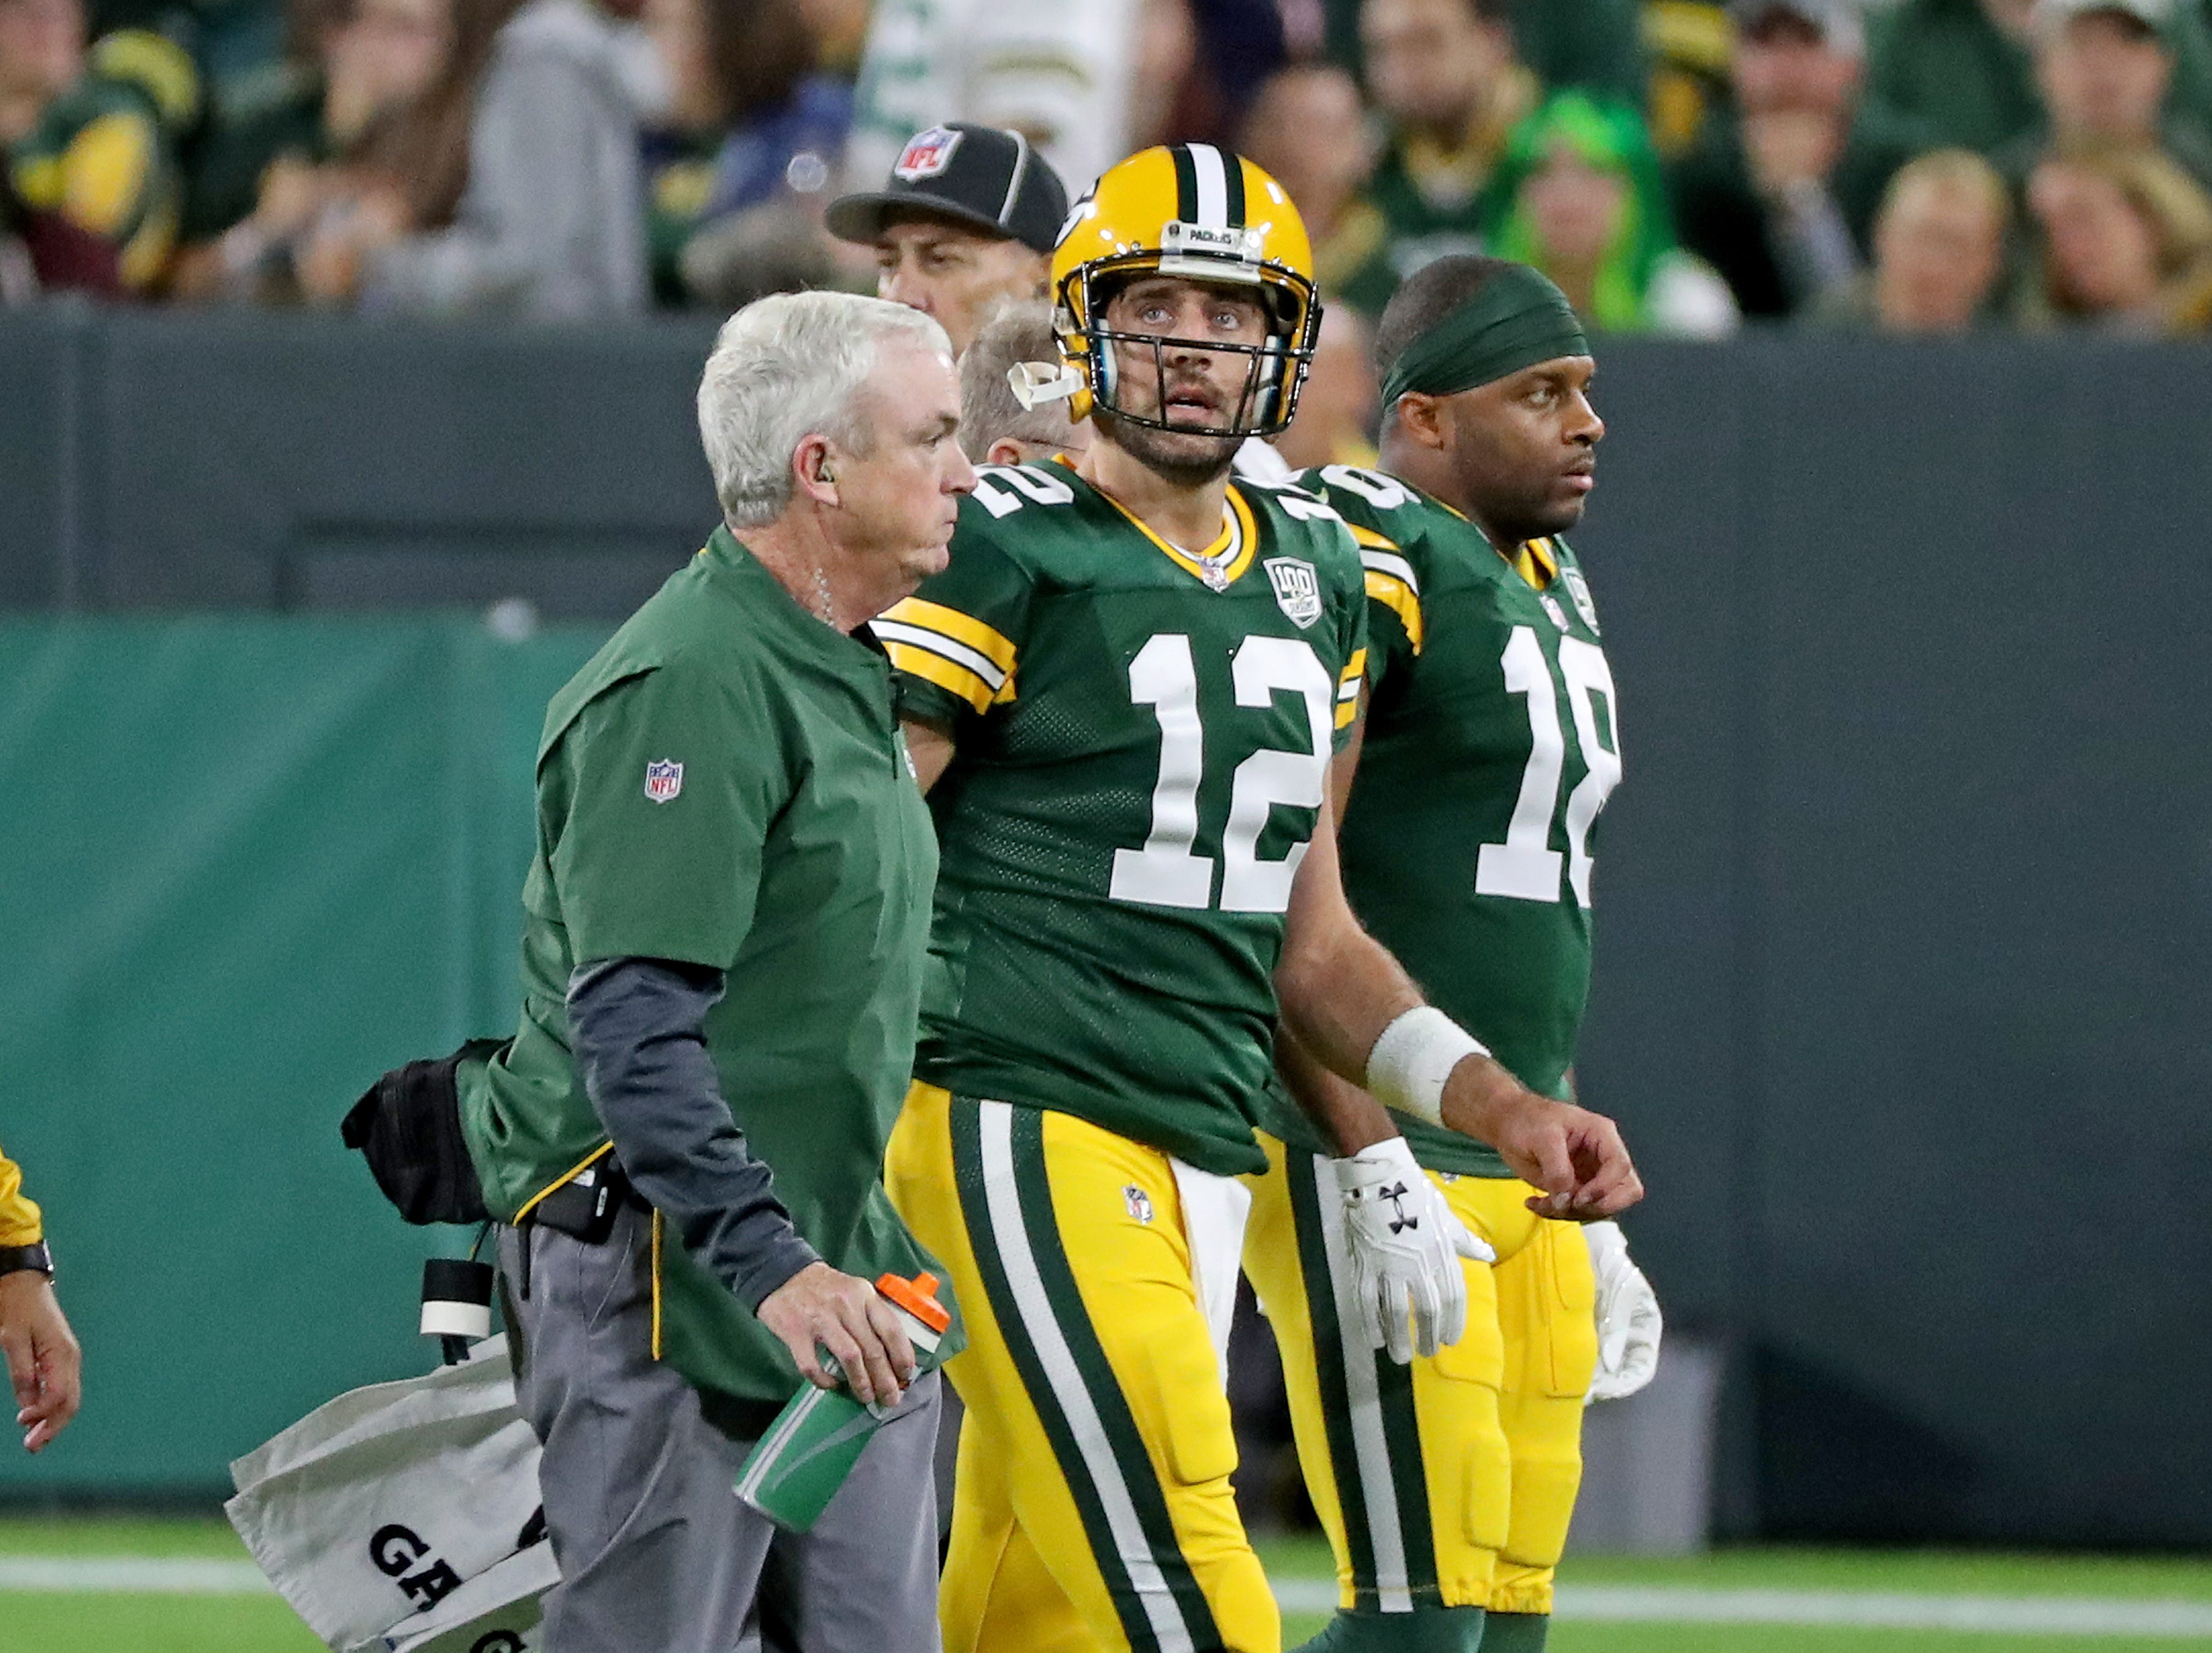 Green Bay Packers quarterback Aaron Rodgers (12) walks off the field after being injured against the Chicago Bears Sunday, September 9, 2018 at Lambeau Field in Green Bay, Wis. Jim Matthews/USA TODAY NETWORK-Wisconsin